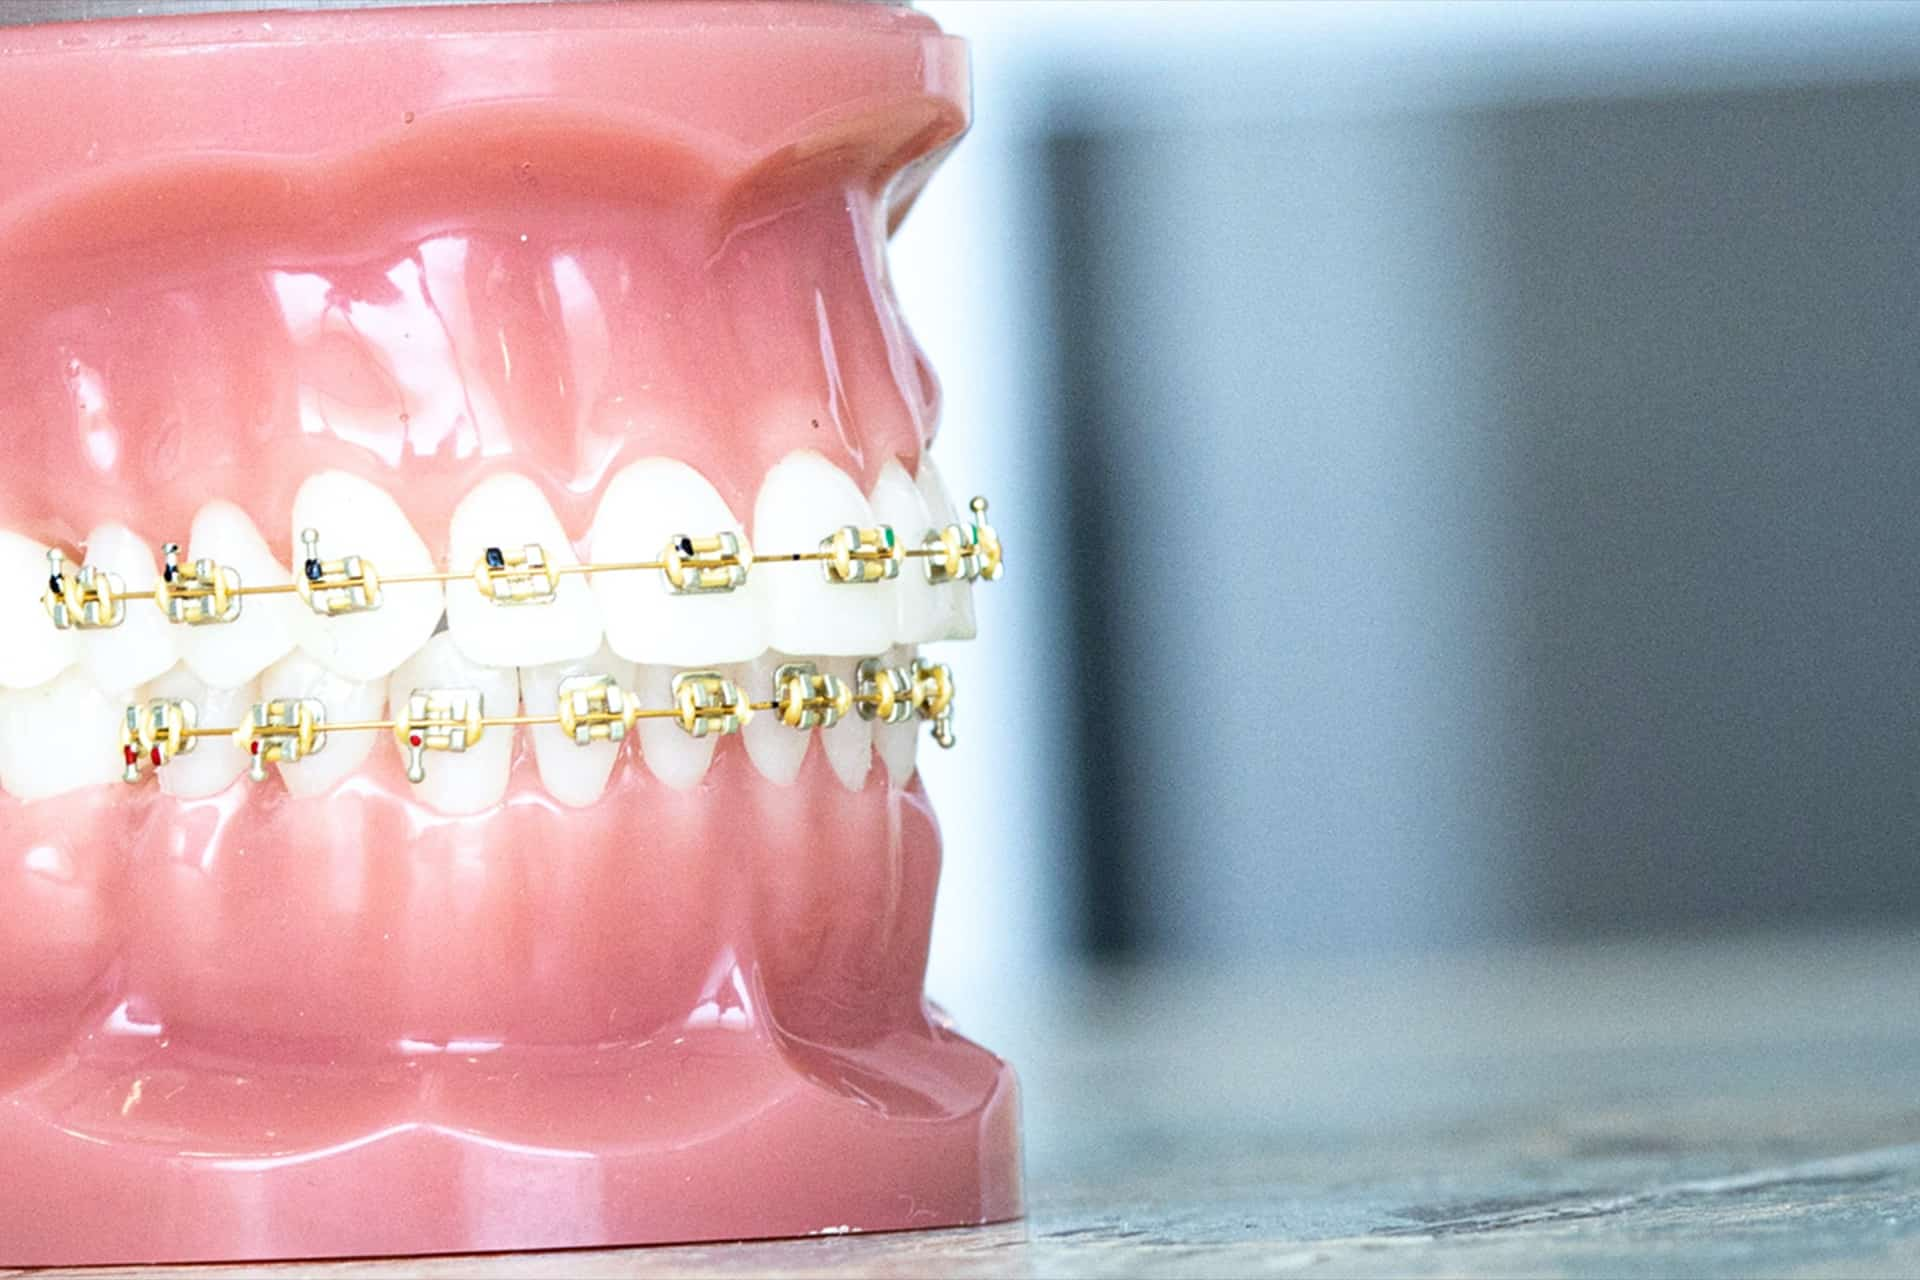 Tooth Models Gold Orthodontics 80 - Customized Braces & Orthodontic Treatment For Adults and Children